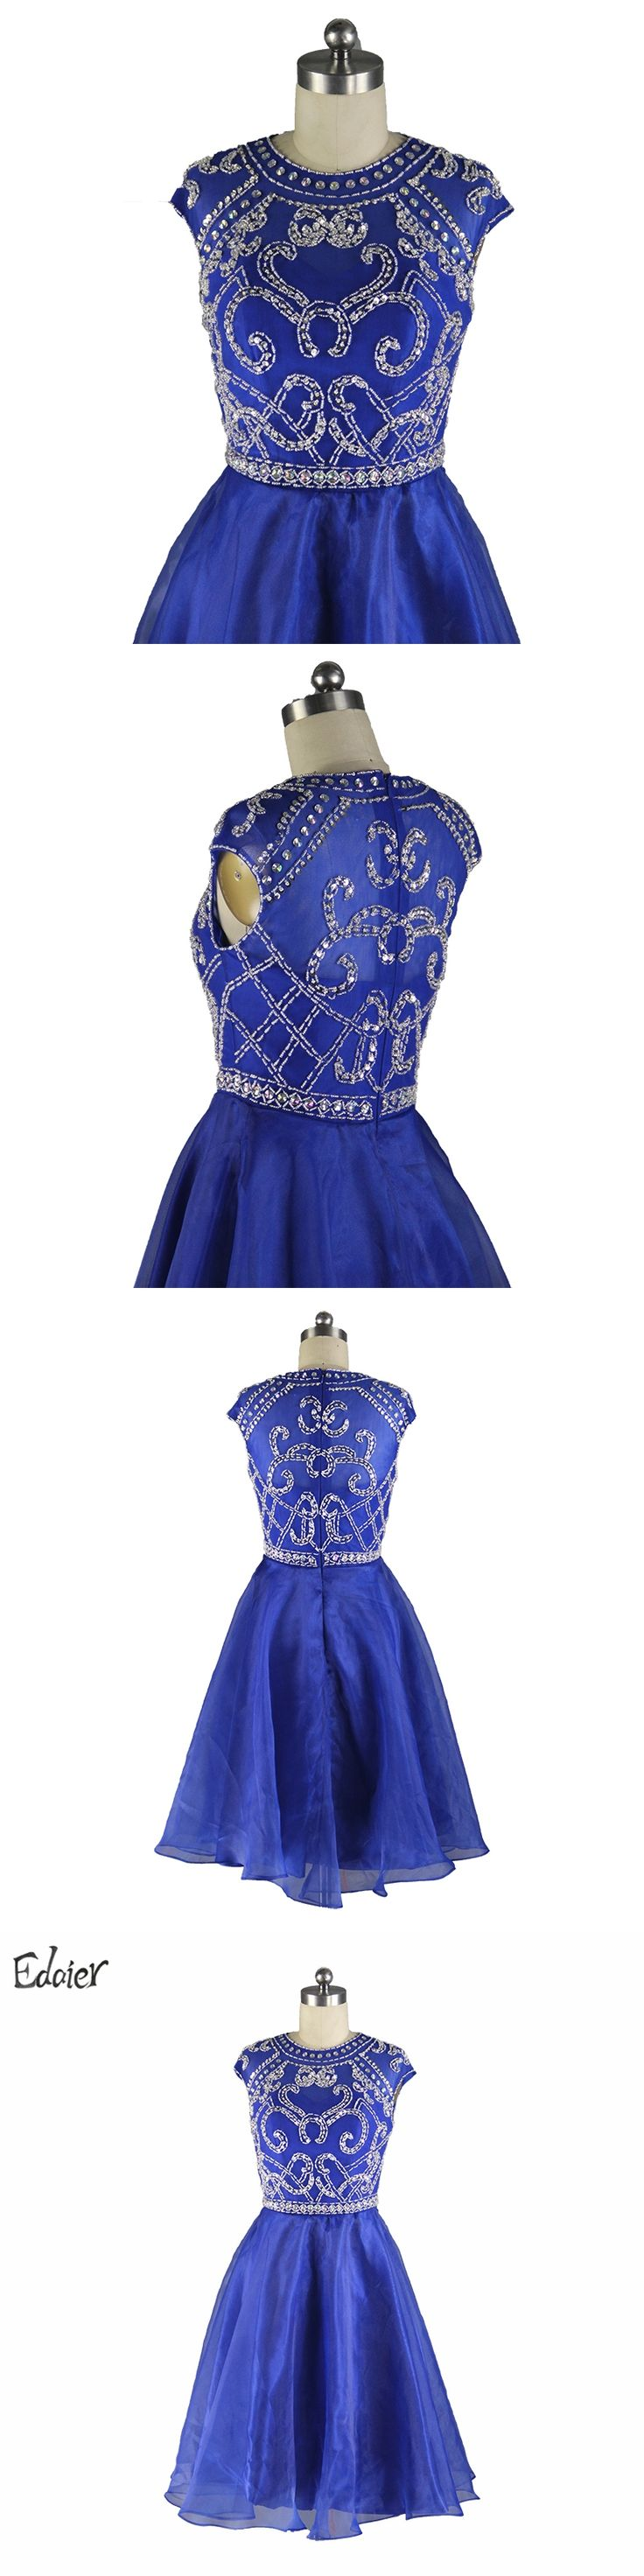 Royal Blue Short Prom Dress 2017 A line Beaded Crystal Cap Sleeves Sheer Back Knee Length Formal Party Gown Cocktail Dresses